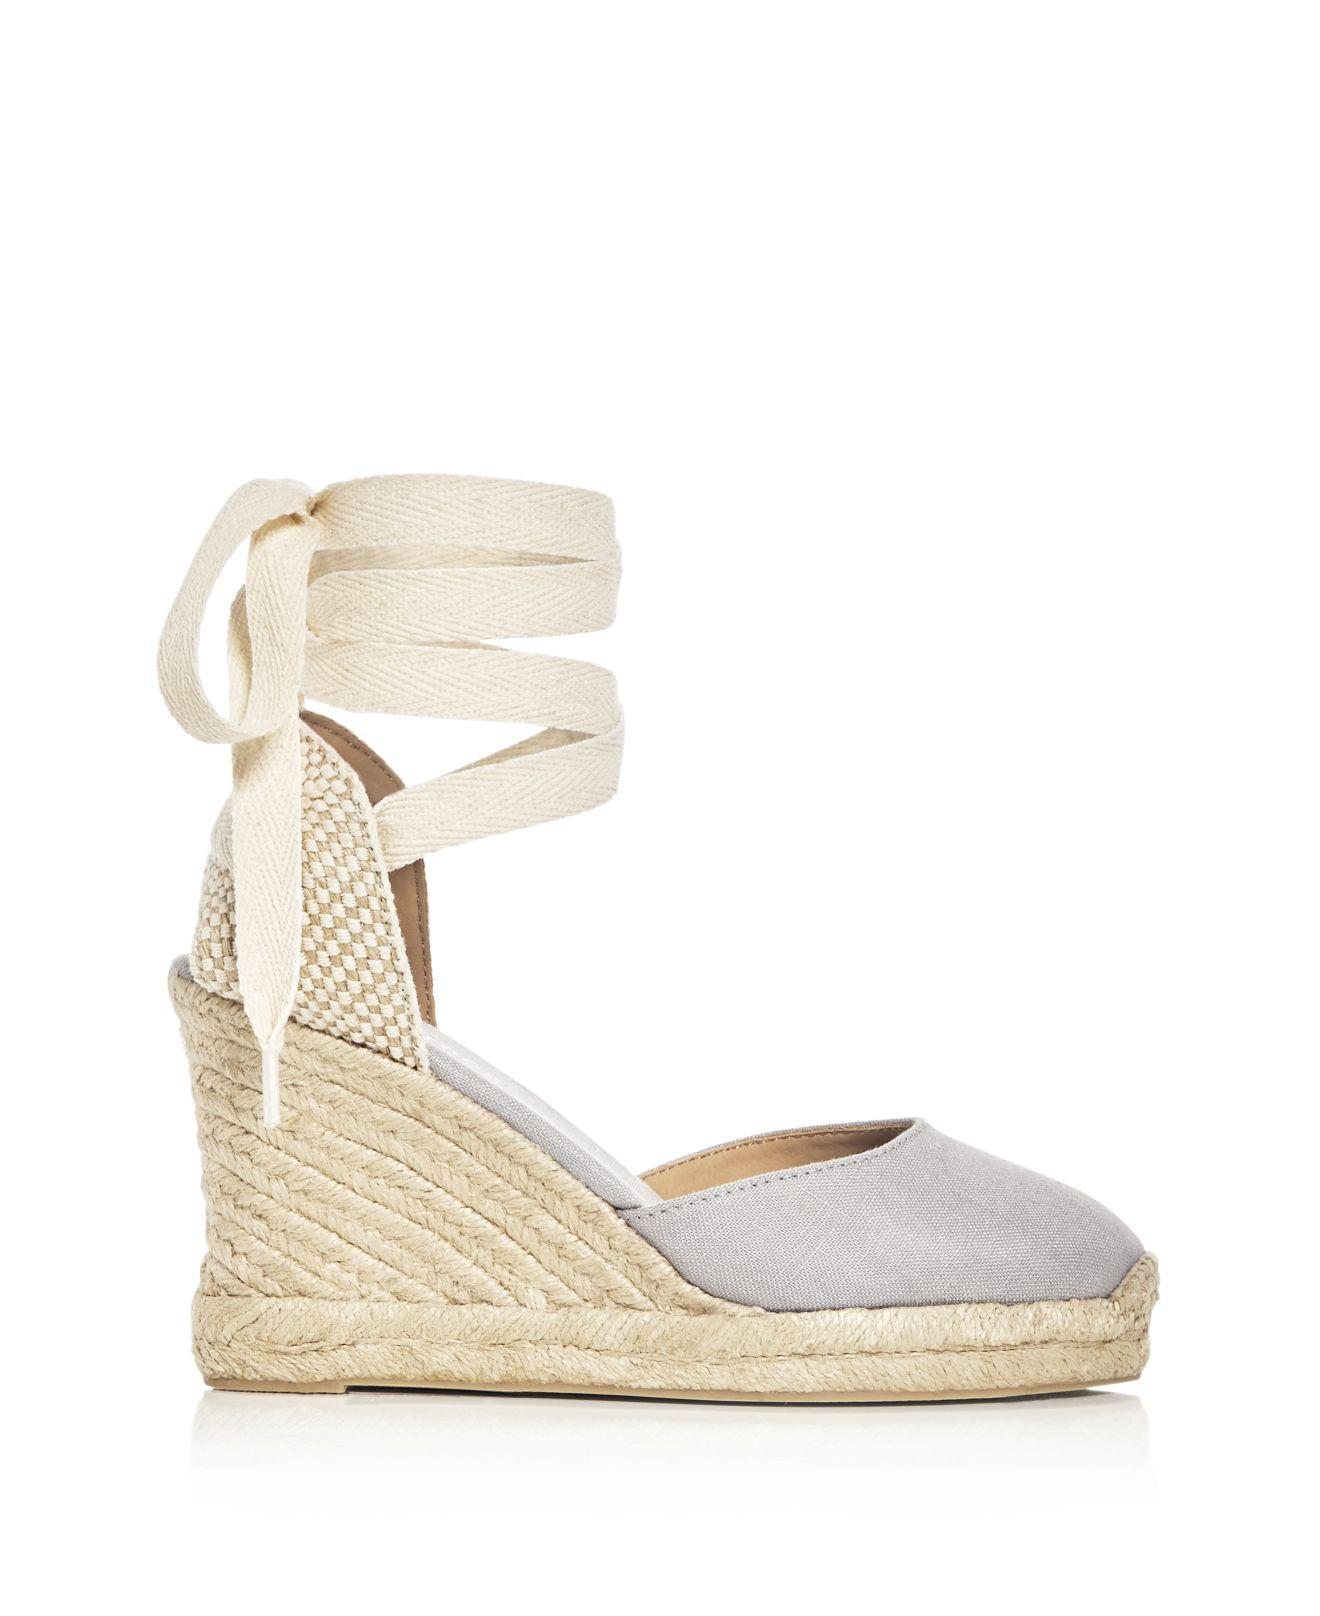 e88b25ce761 Soludos Gray Women's Lace Up Espadrille Wedge Sandals